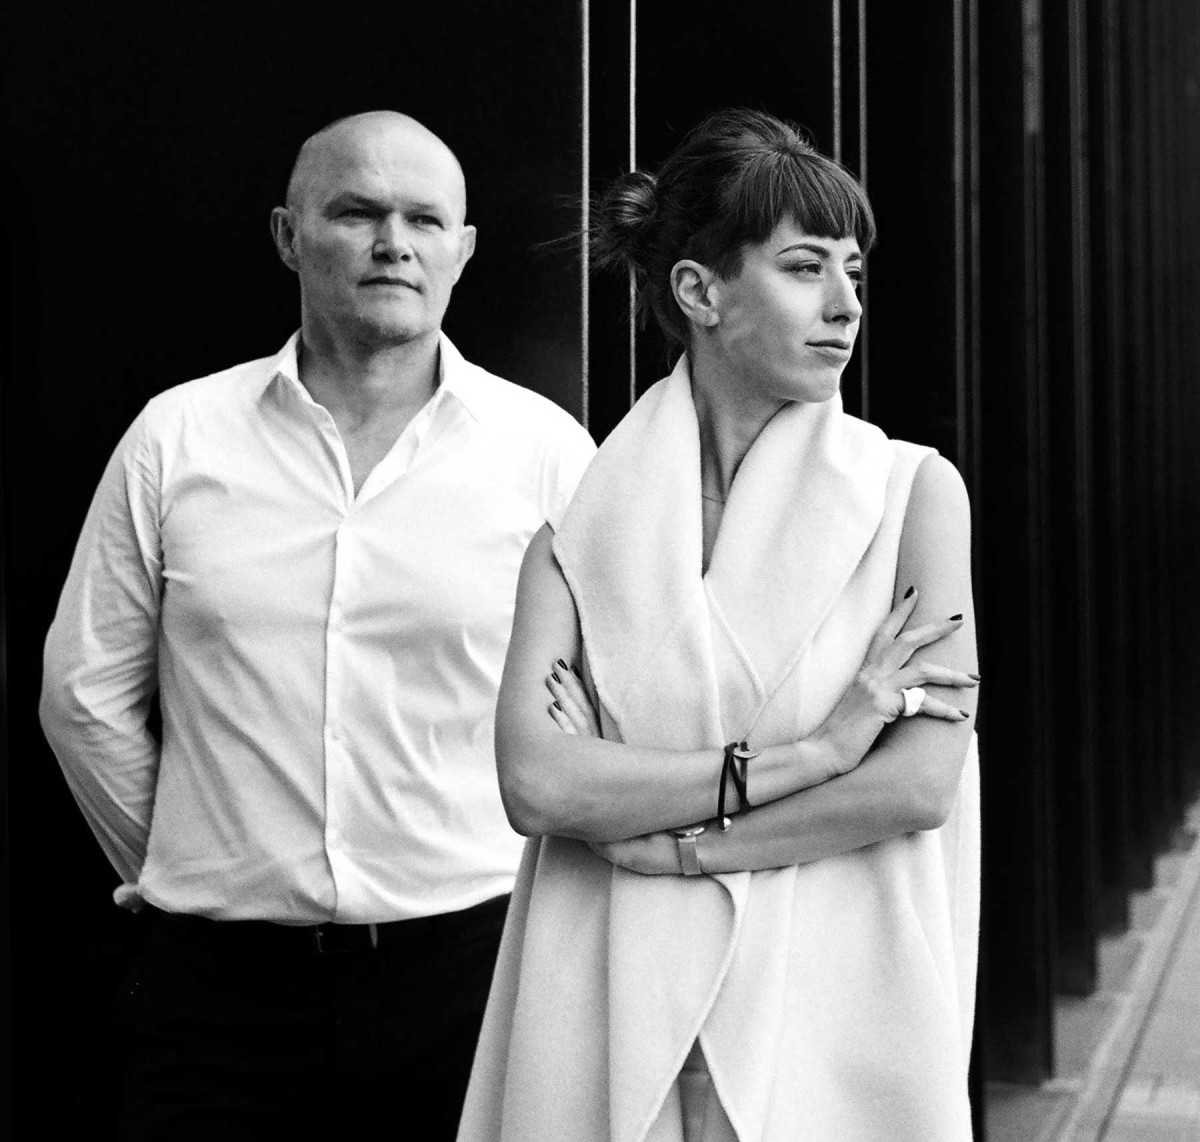 Igor and Yulia Lobanov have 'a 3-D life,' according to Yulia. They are married, raising a young daughter, and working together daily as partners in Lobanov Design.